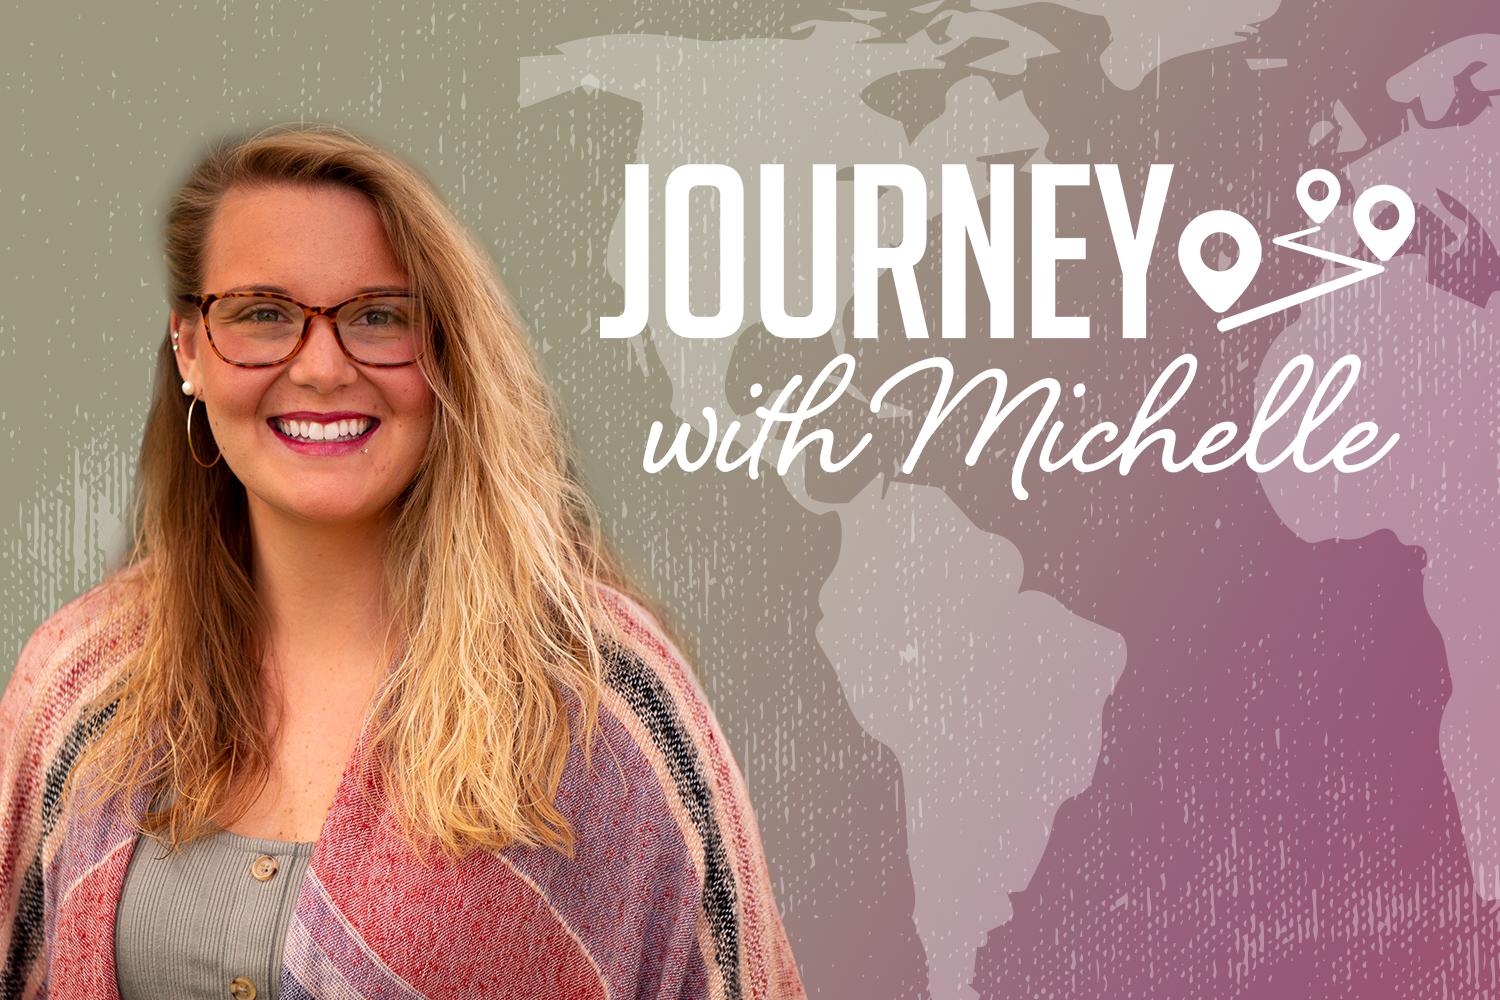 Journey with Michelle